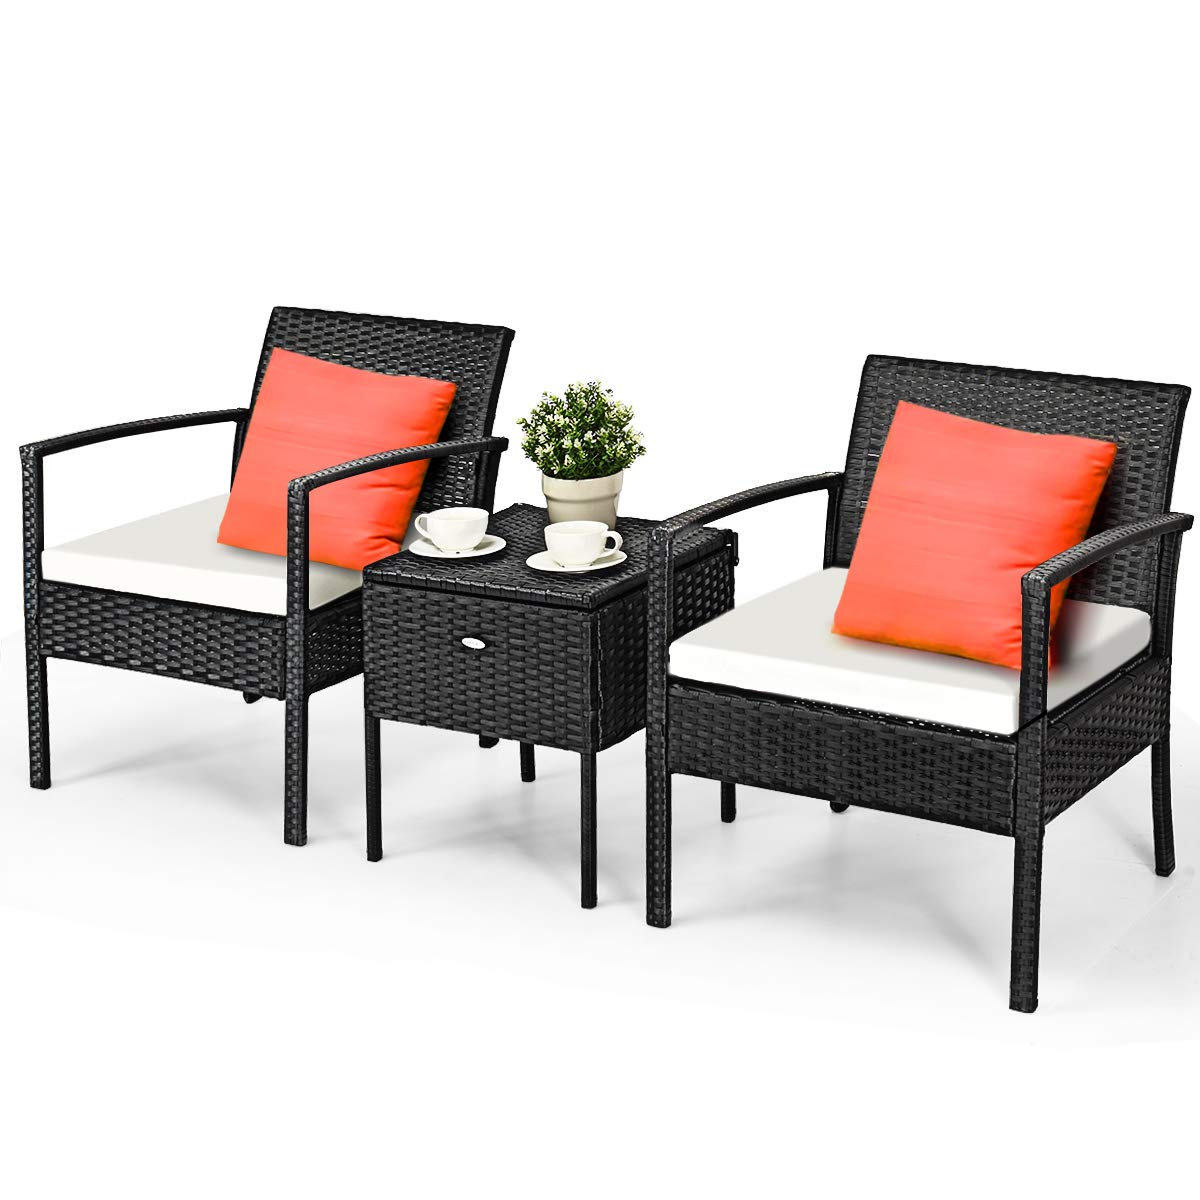 Tangkula 3 Piece Patio Conversation Set, Outdoor Wicker Rattan Conversation Set with Storage Coffee Table, Chairs Thick Cushions, Backyard Porch Poolside Lawn Modern Outdoor Furniture Set, Black